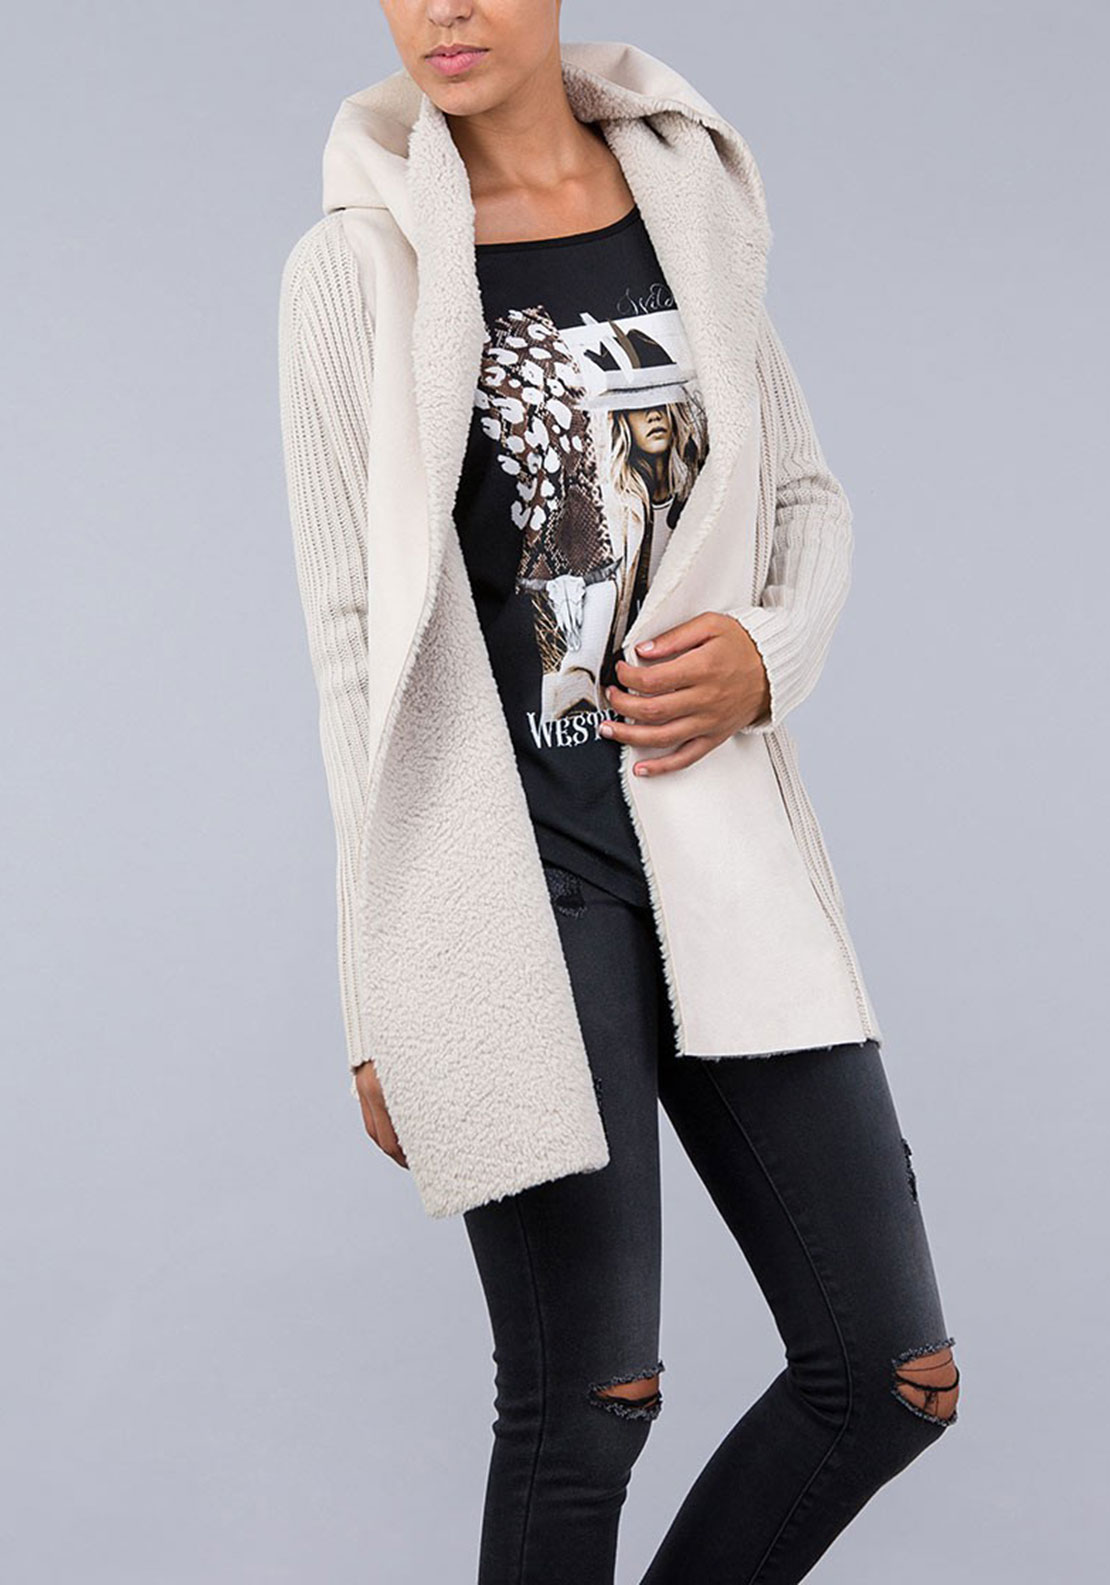 Tiffosi Womens Celia Hooded Knit Cardigan, Cream